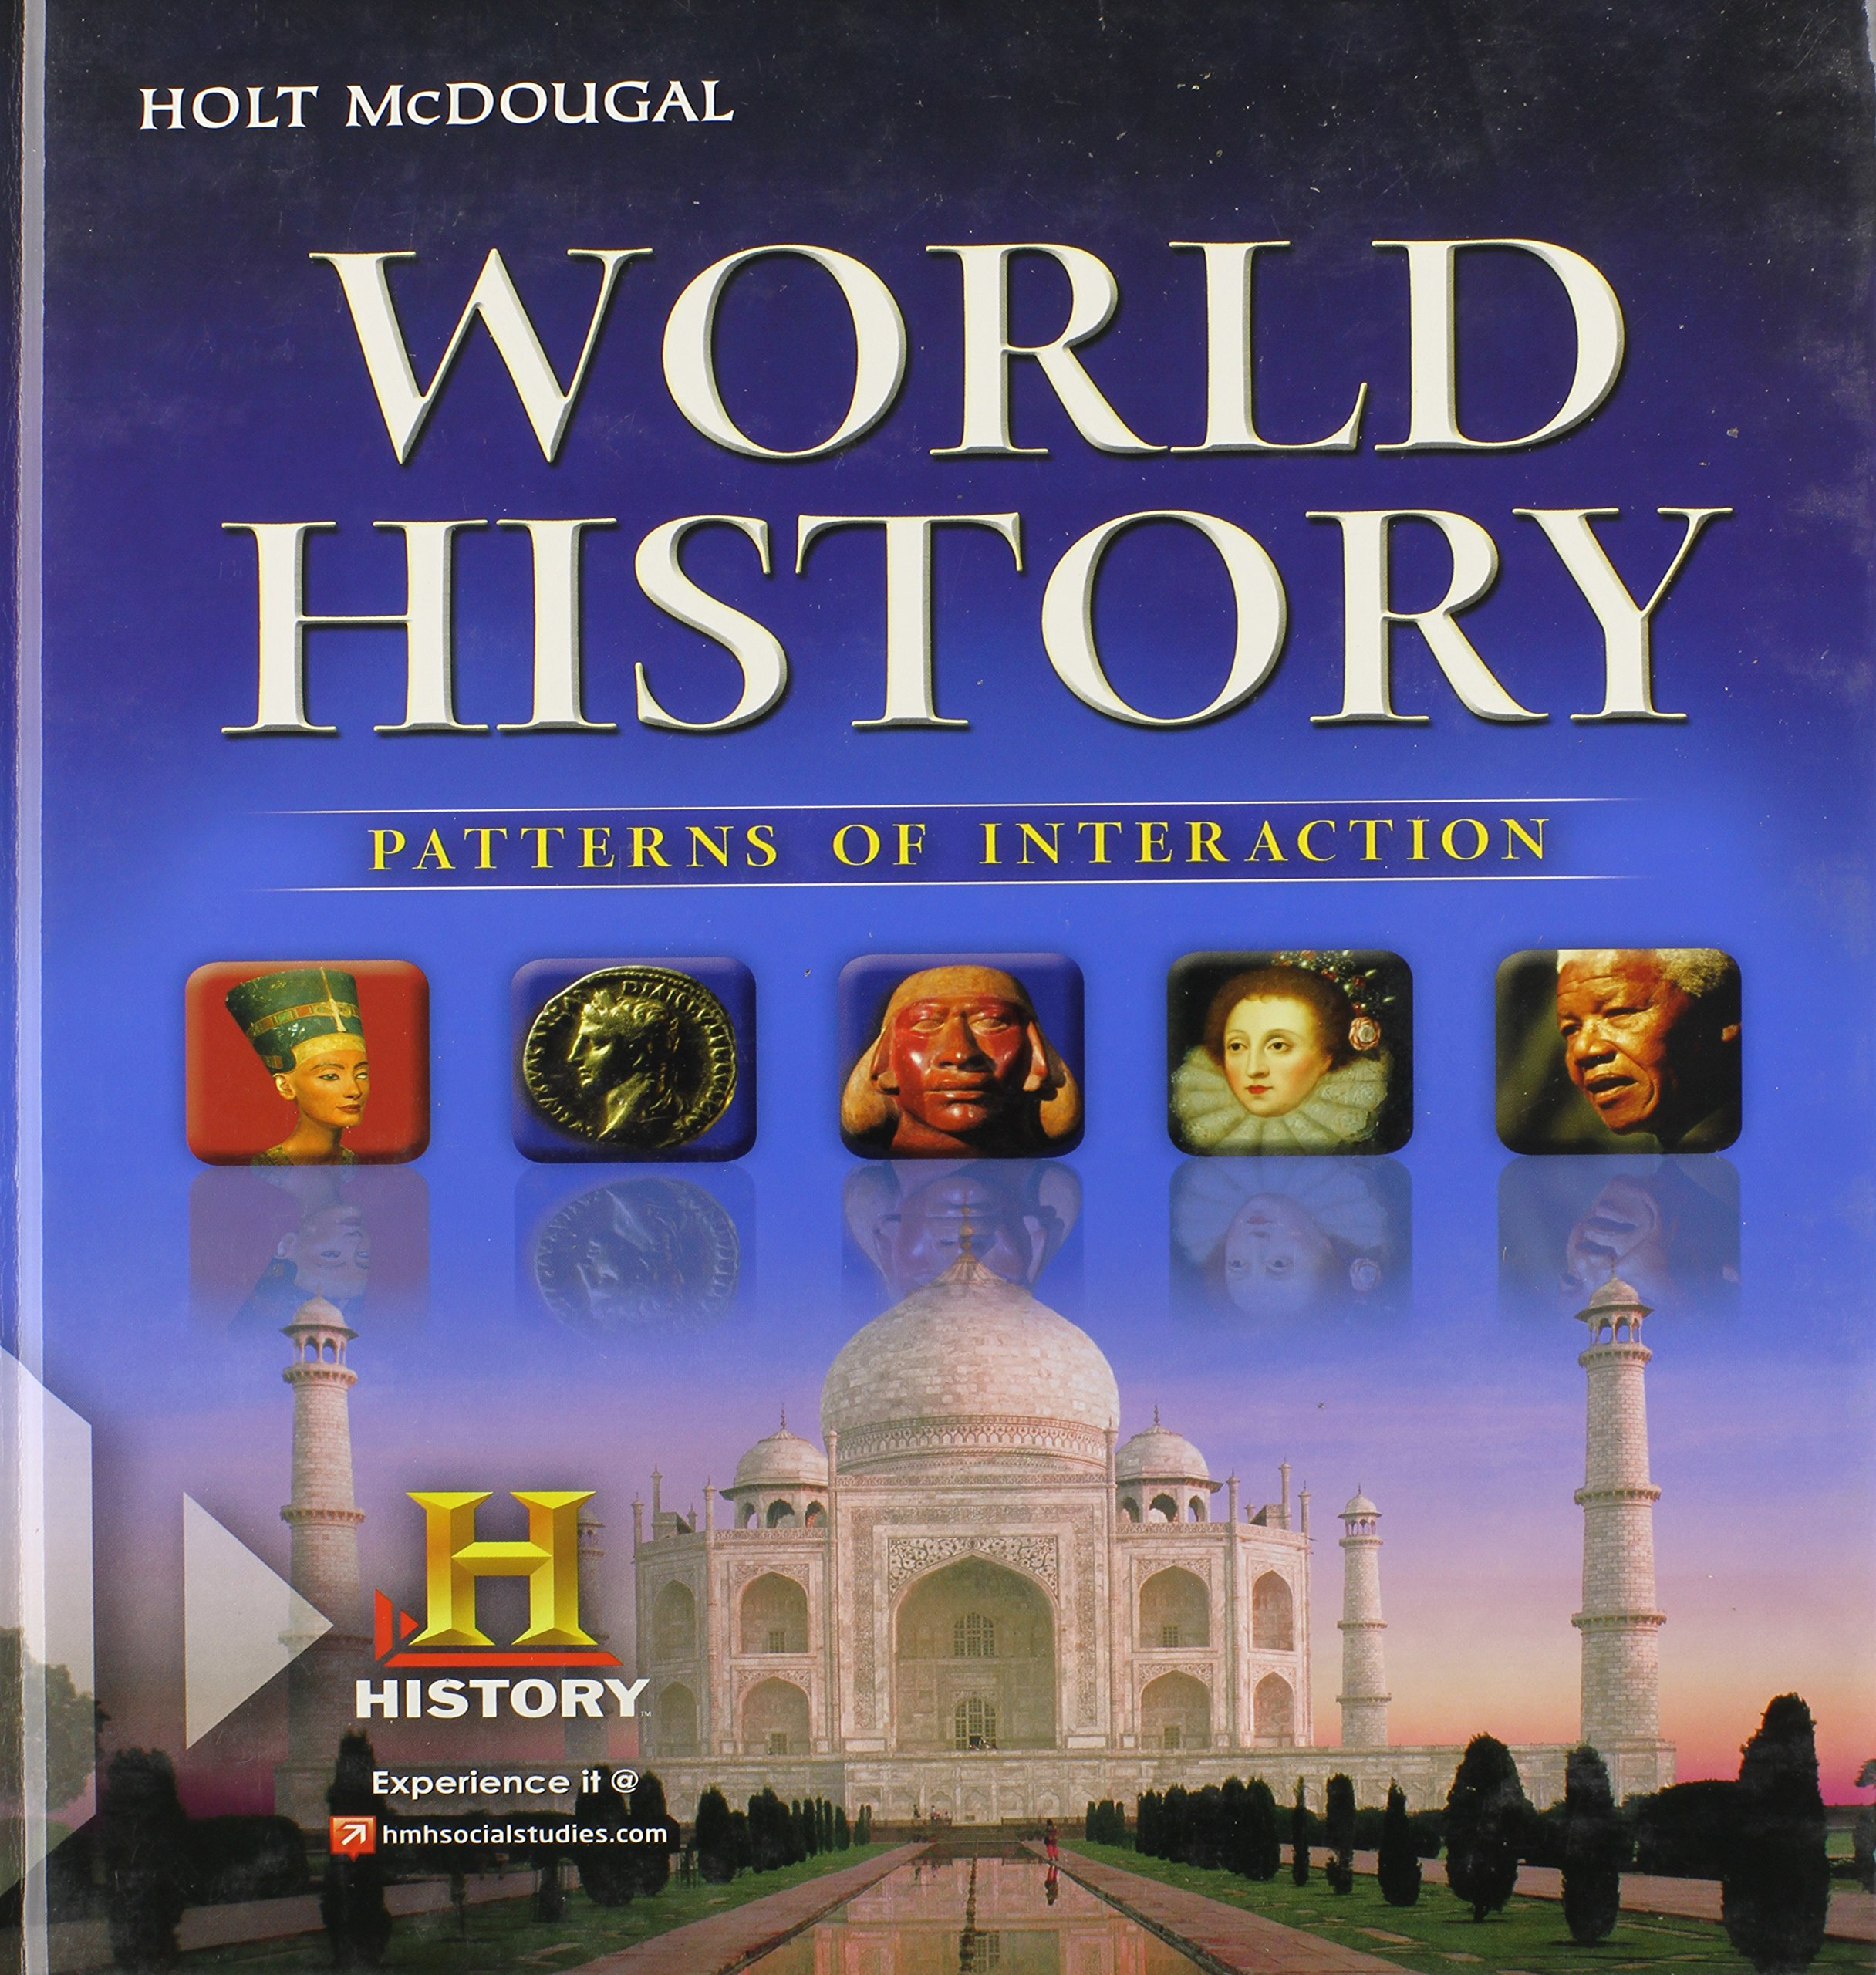 Holt Mcdougal World History Textbook Pdf 8th Grade